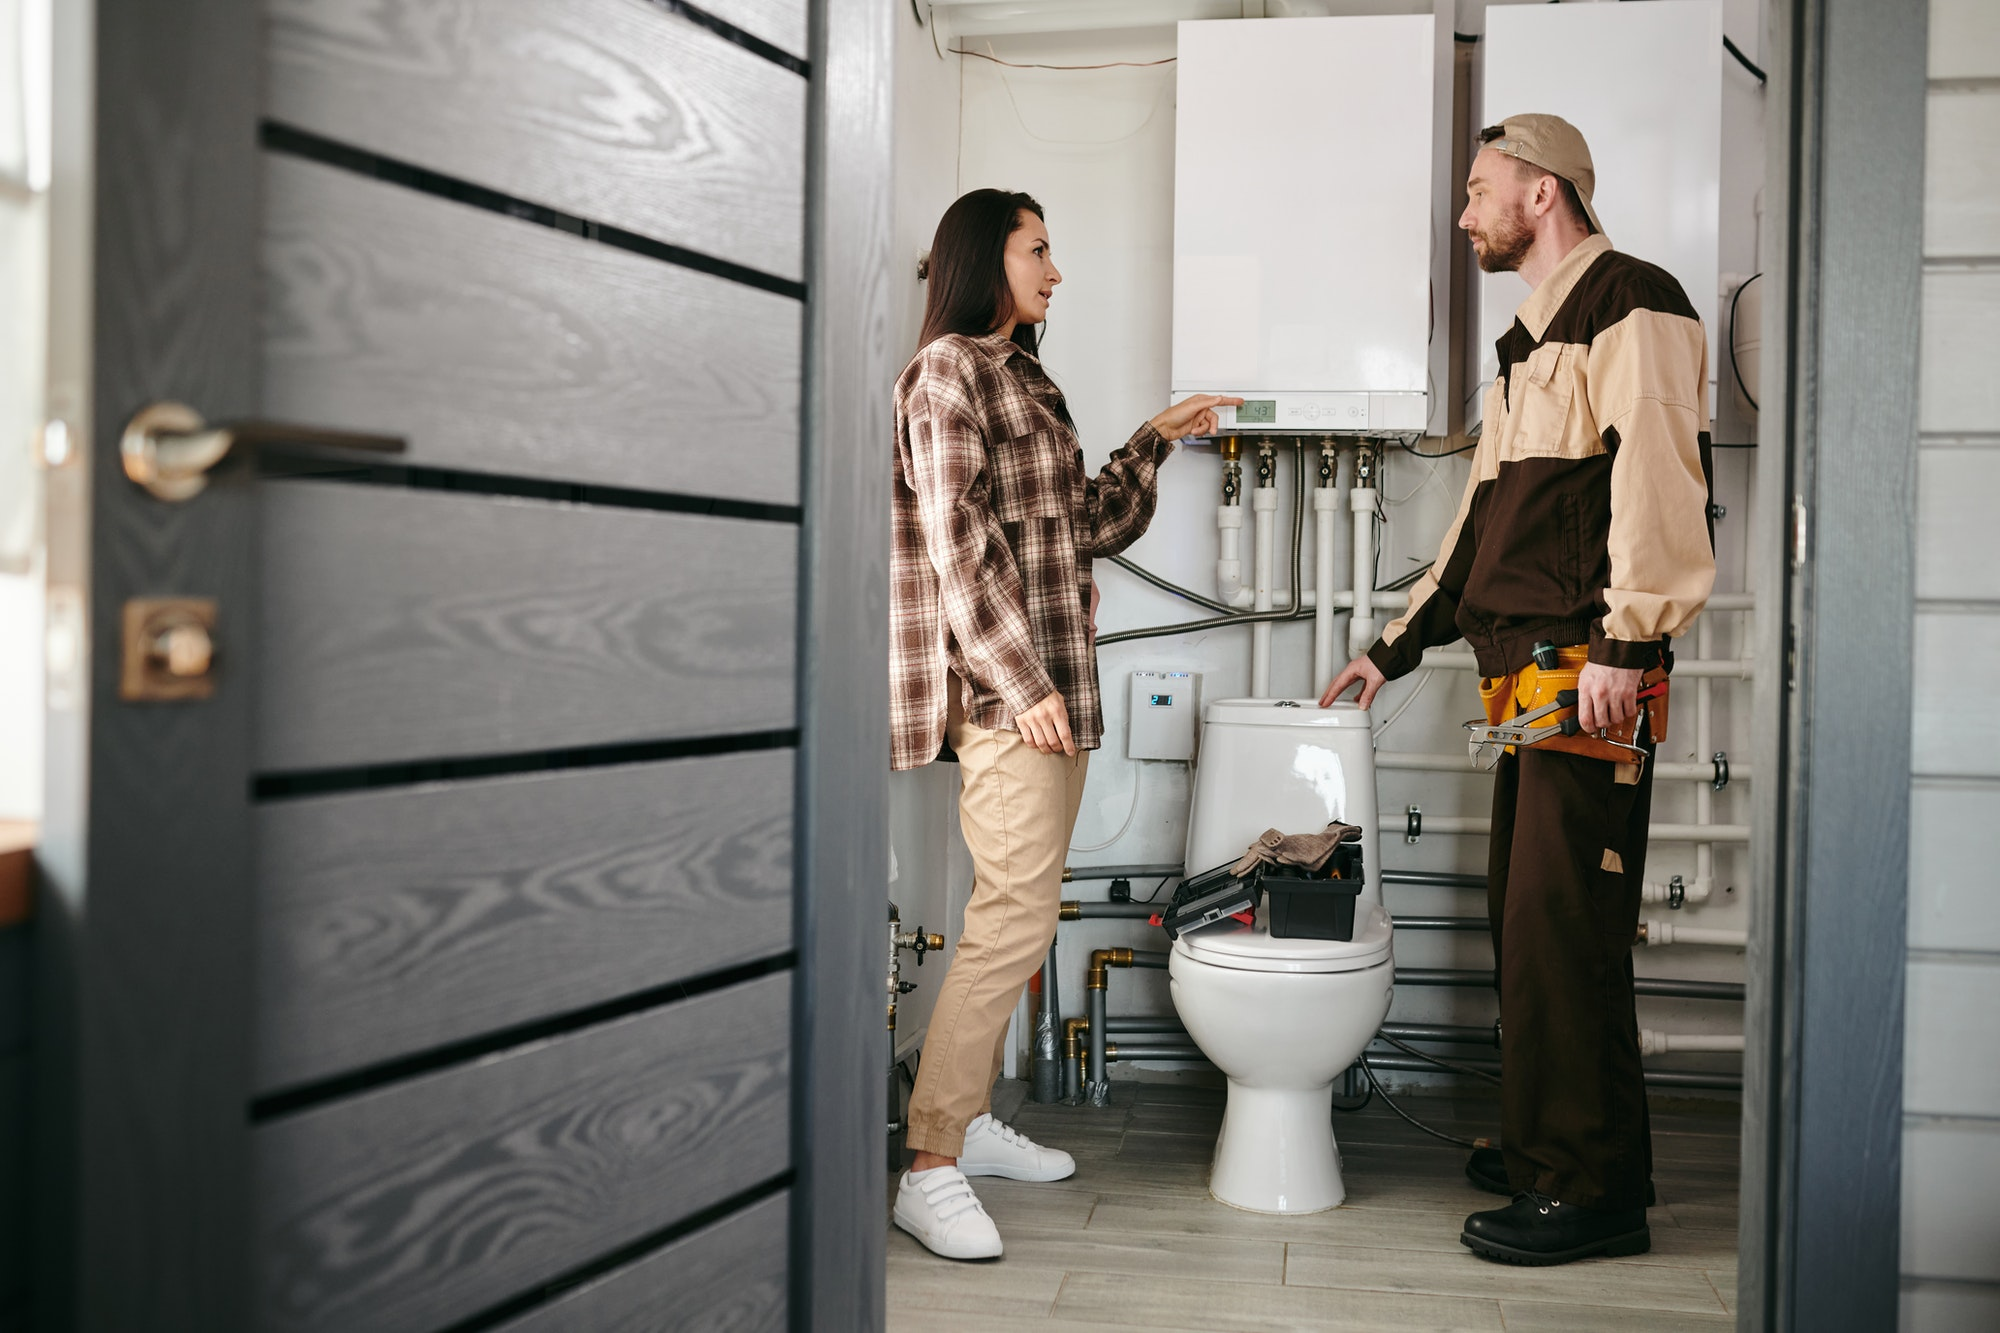 A man and woman standing in a bathroom and discussing problem with plumbing equipment